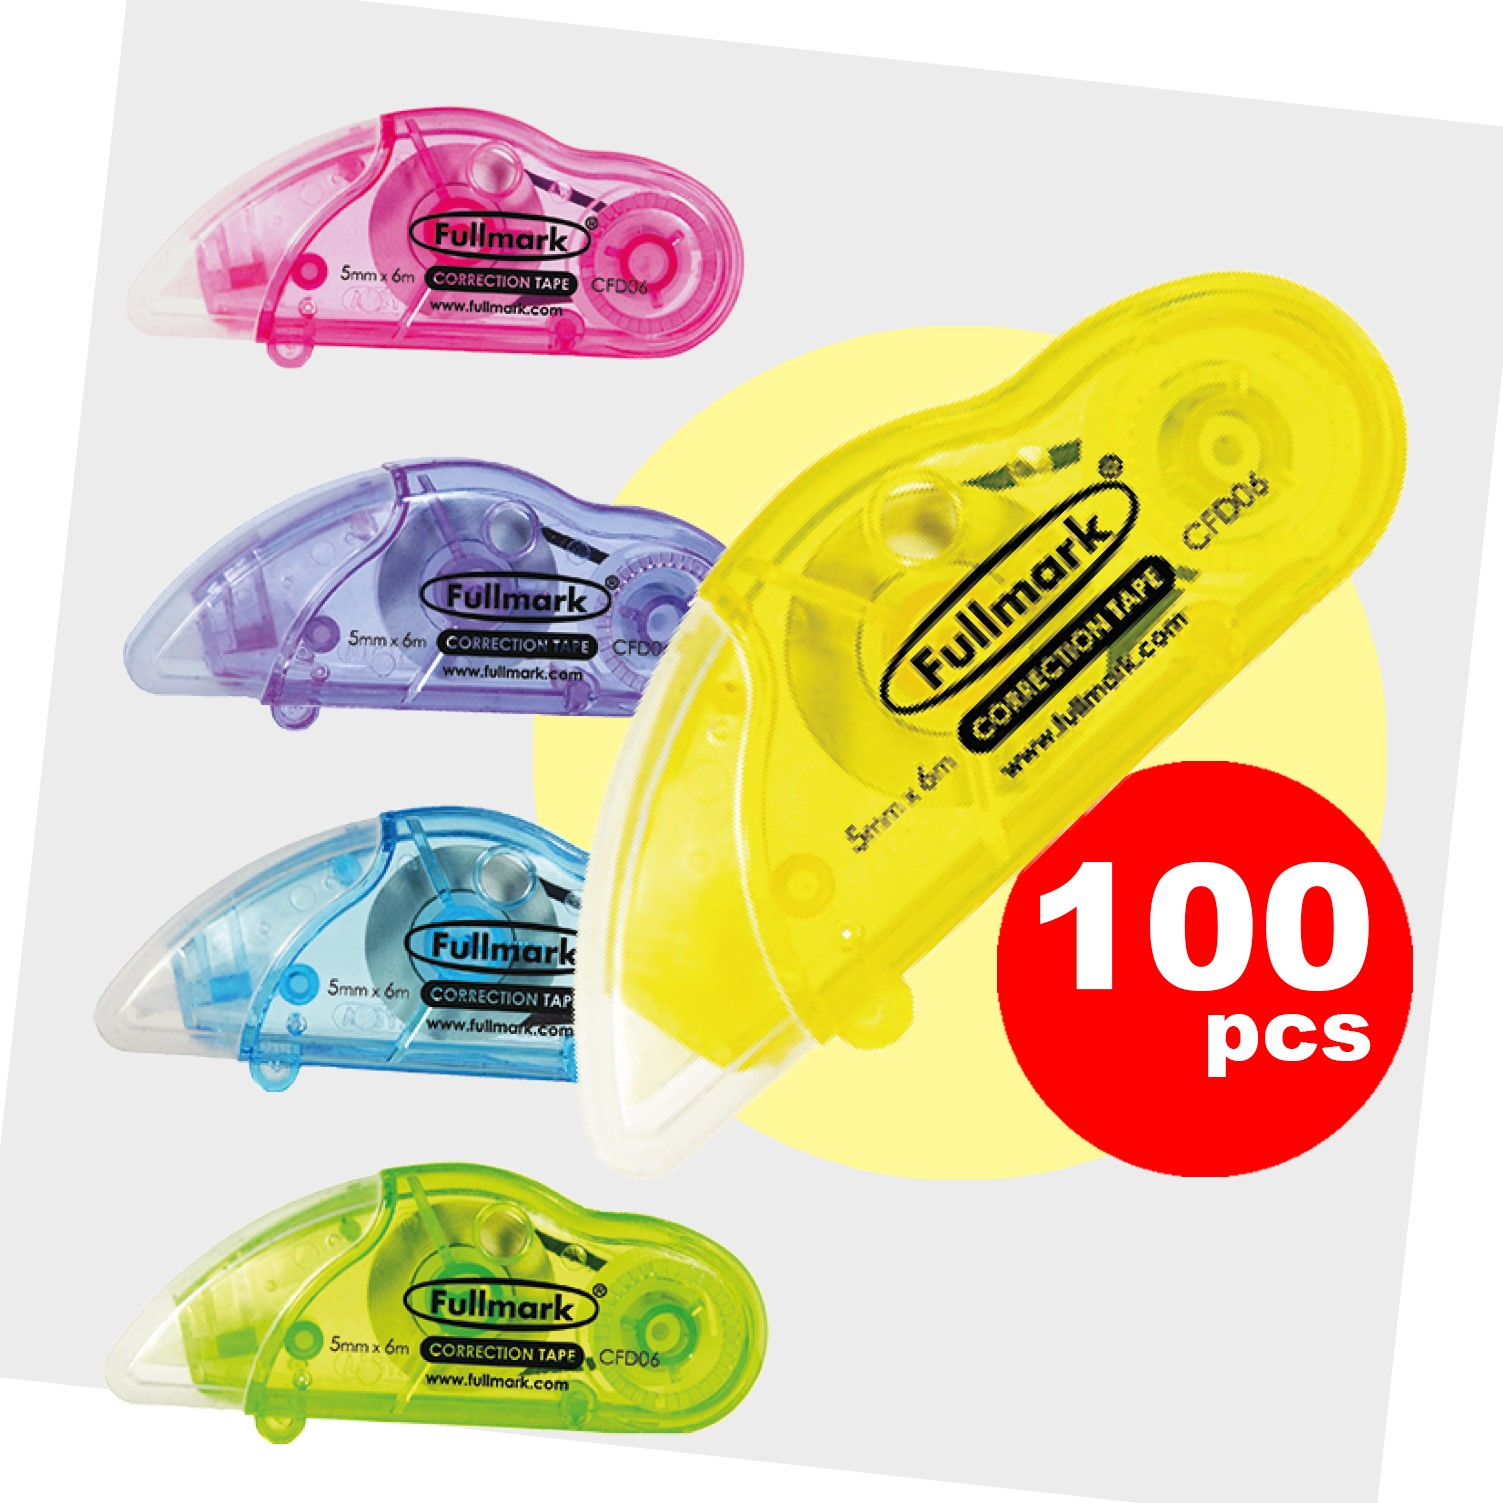 Fullmark Model D Correction Tape Gift Box 100pack - 5mm X 6m each